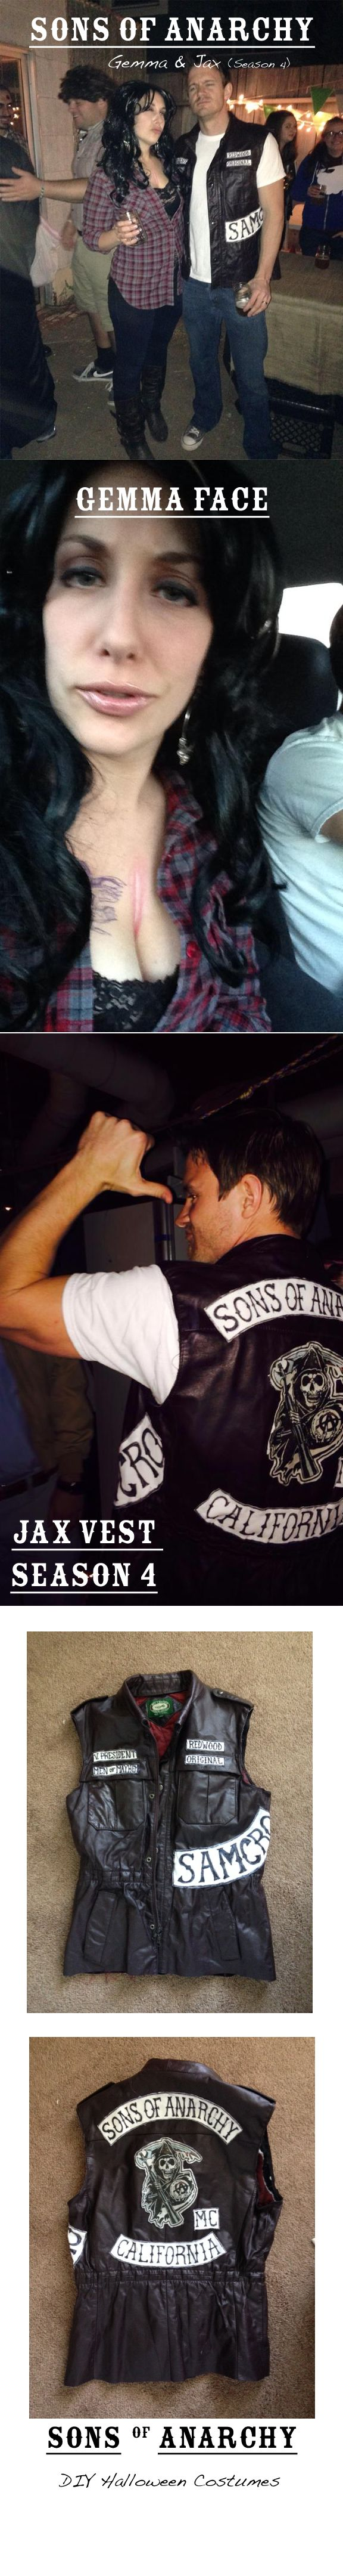 Sons of Anarchy Halloween Costume For Sale on Etsy: https://www.etsy.com/listing/204213252/sons-of-anarchy-mc-jax-season-4-cut